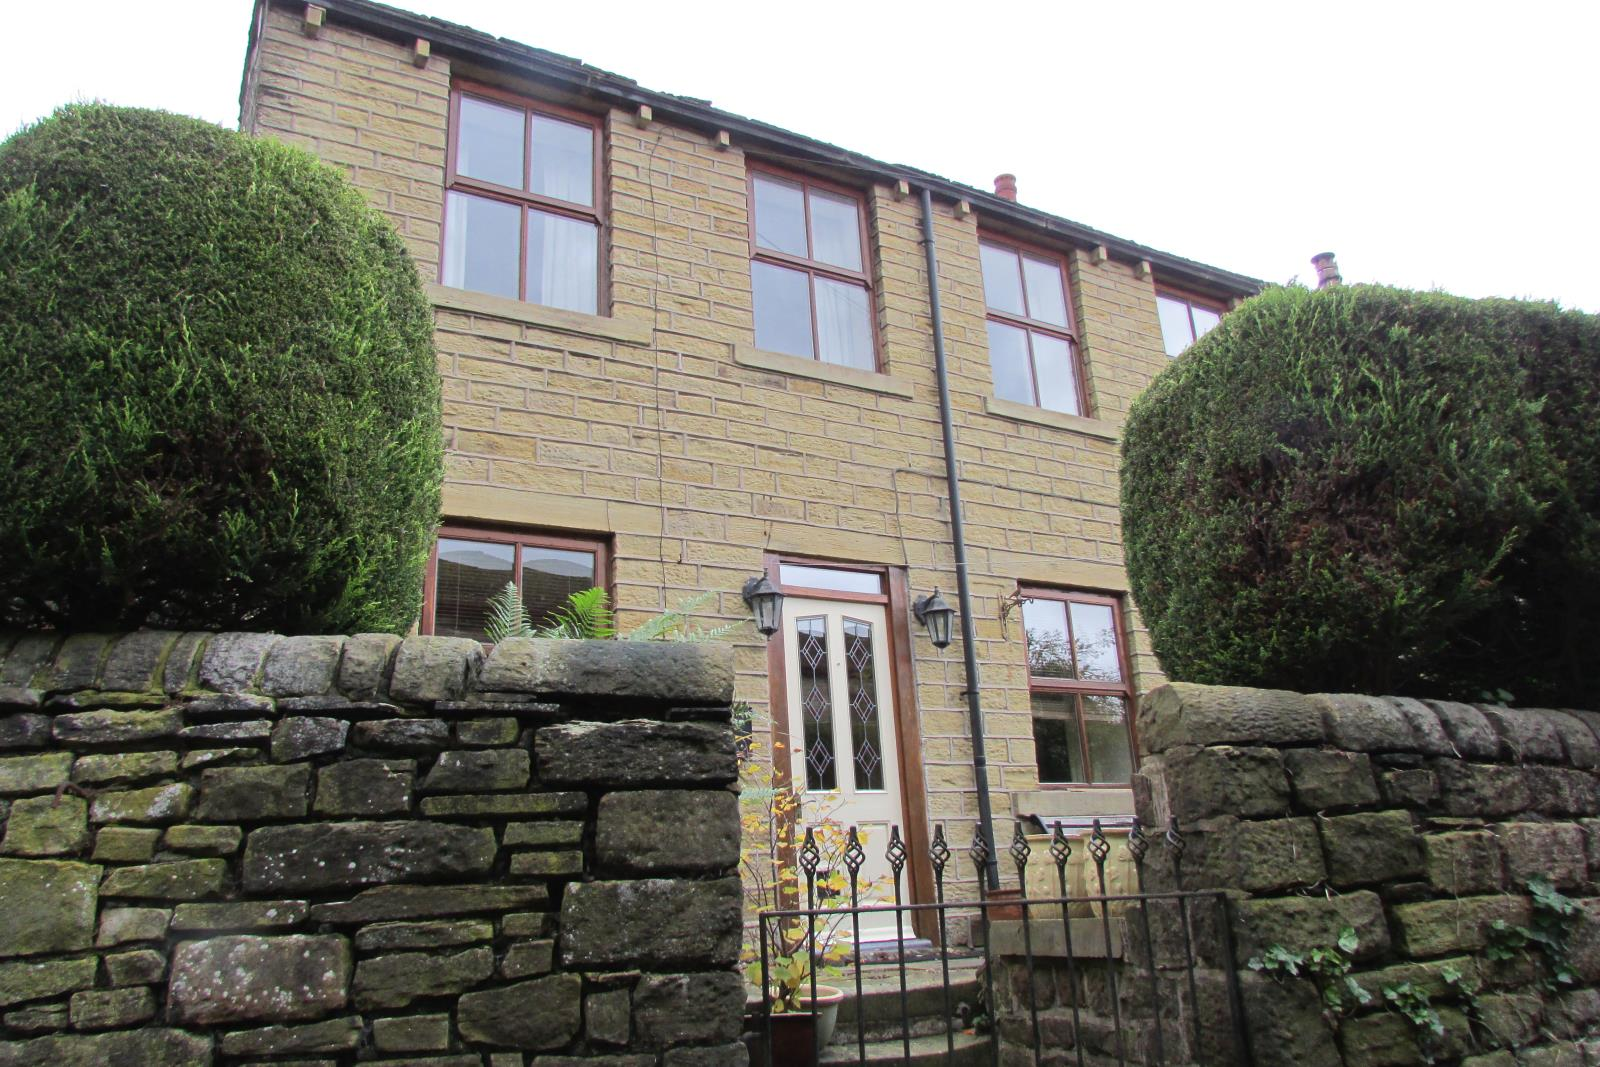 Mill Cottage, Burnlee Road, Holmfirth, HD9 2LF